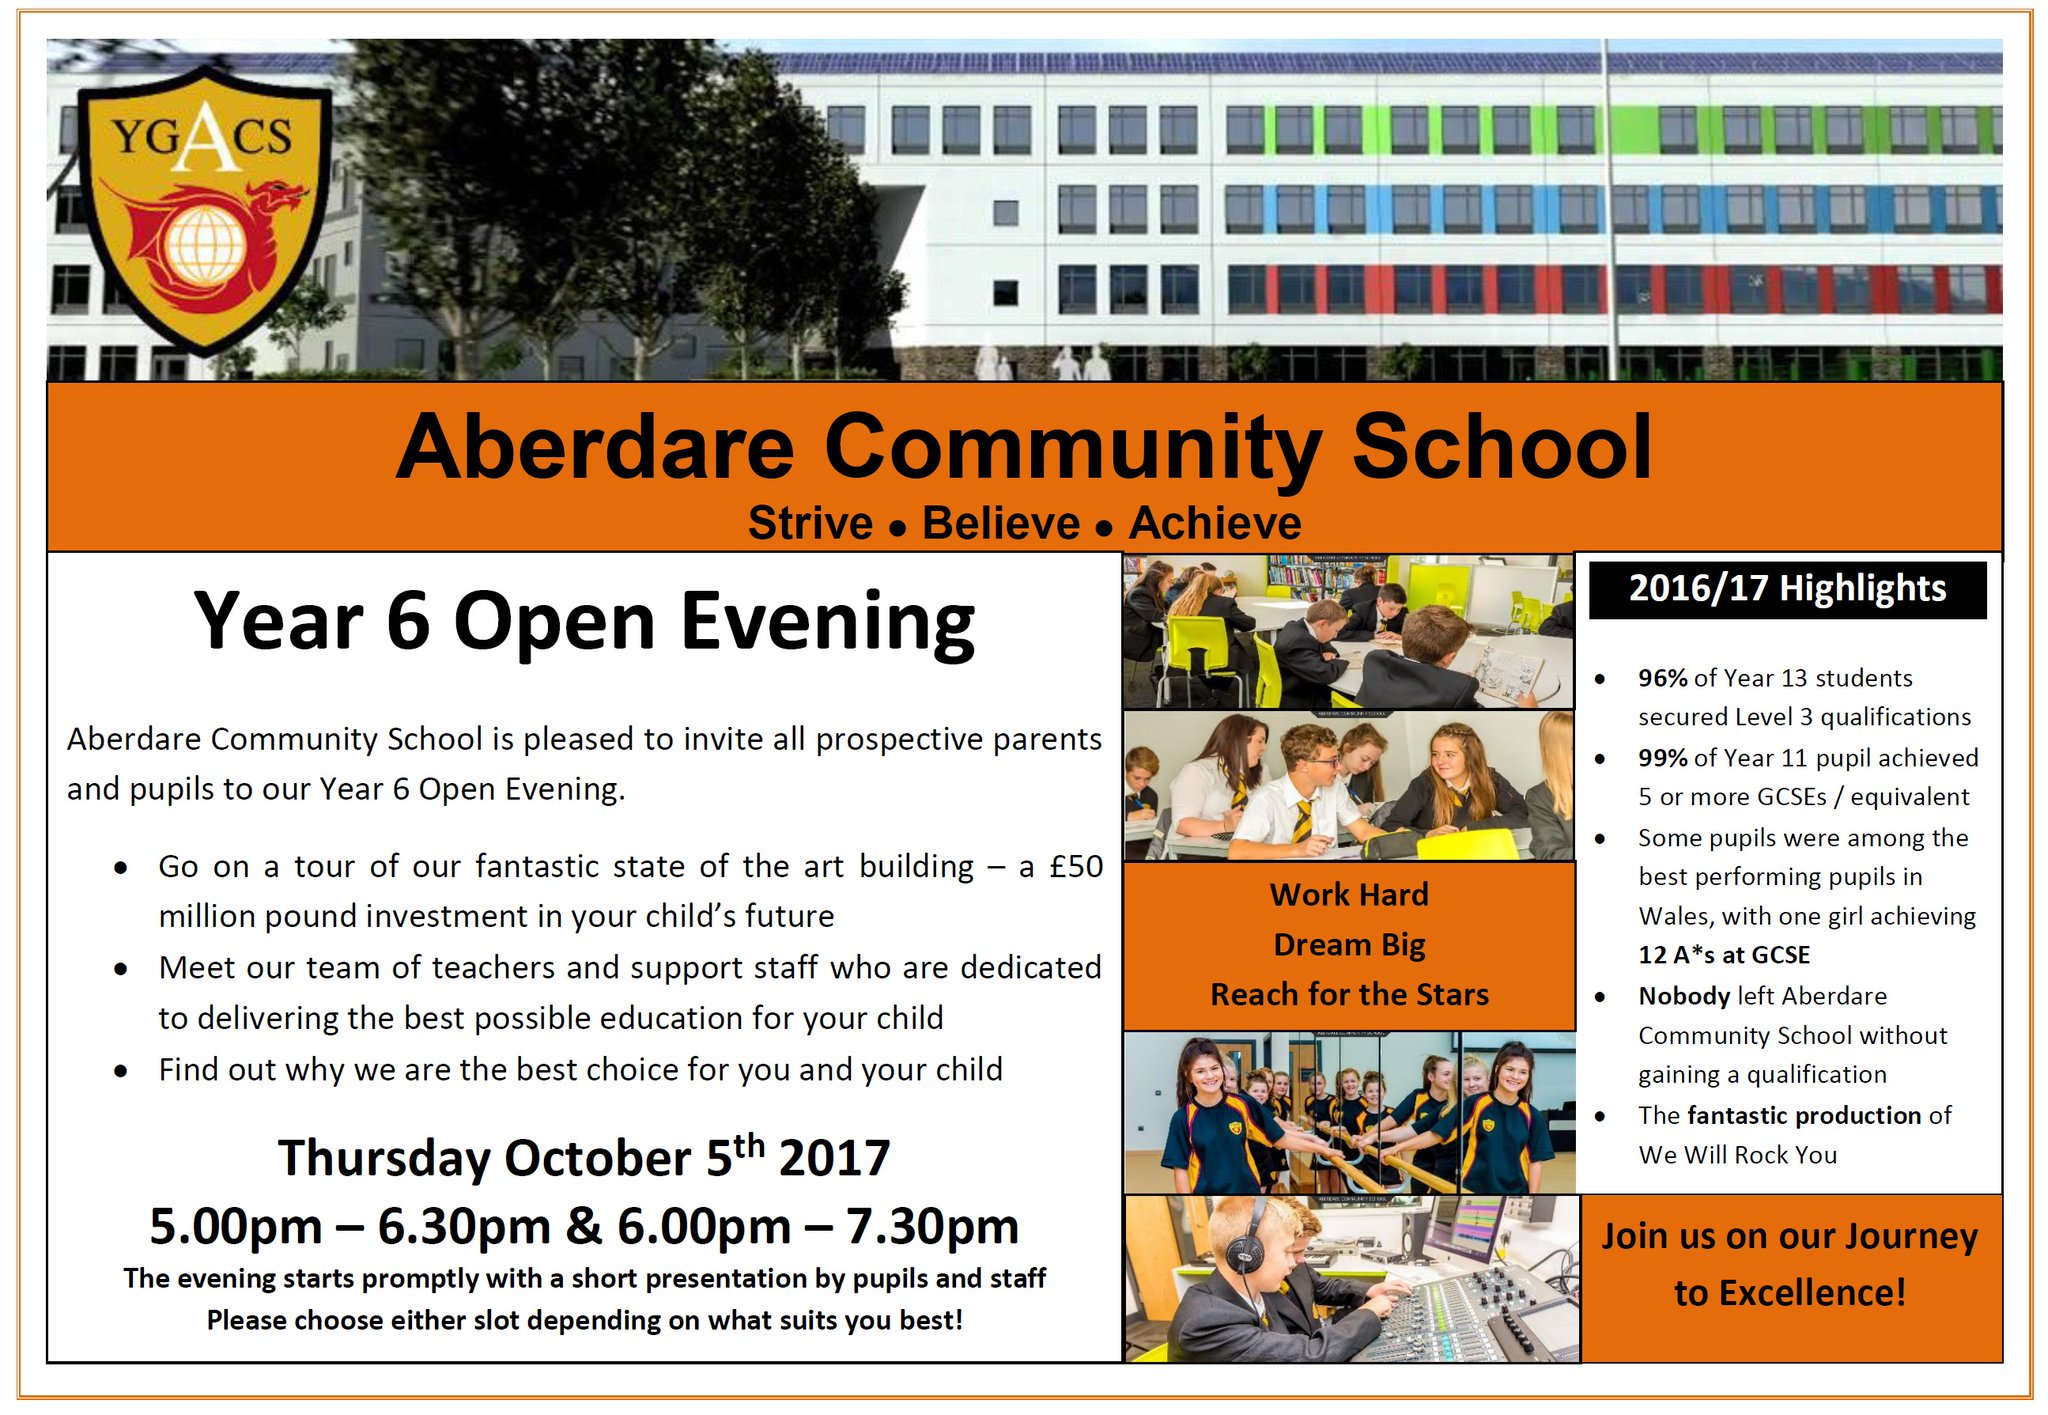 Year 6 Open Evening! Thursday October 5th 2017 5.00pm – 6.30pm & 6.00pm – 7.30pm We look forward to seeing you.